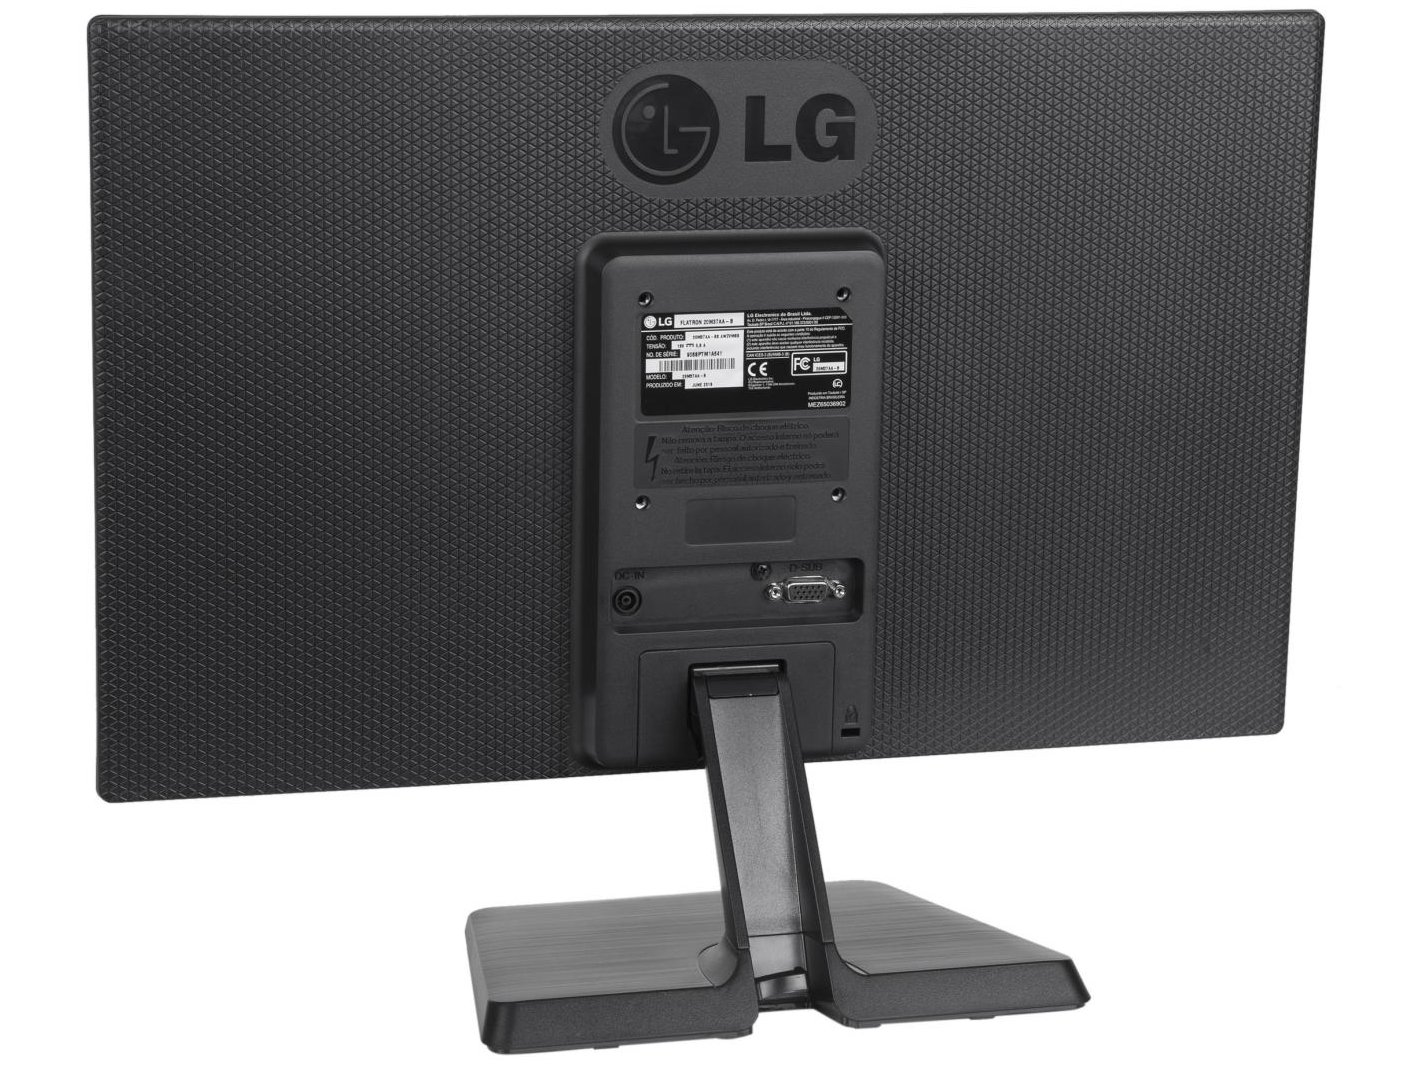 Foto 8 - Monitor para PC LG LED Widescreen 19,5 - 20M37AA